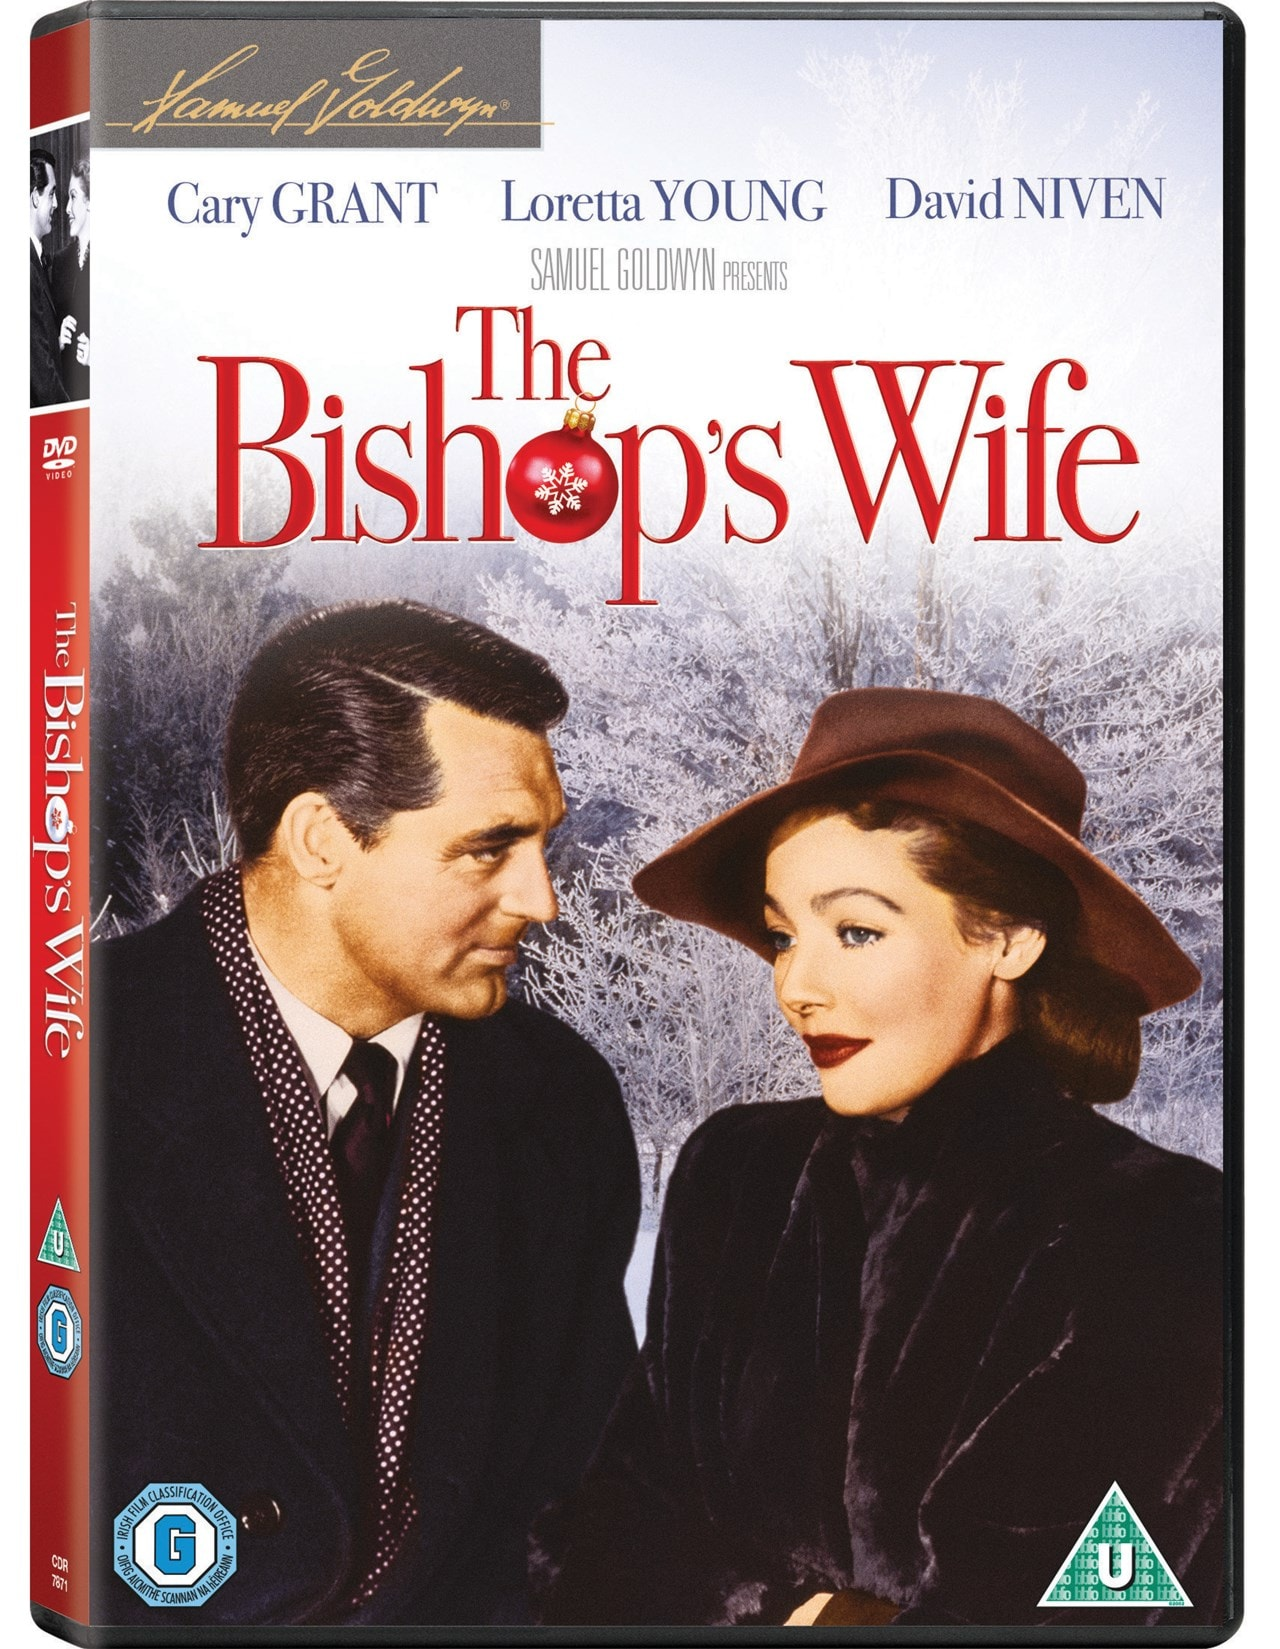 The Bishop's Wife - Samuel Goldwyn Presents - 2